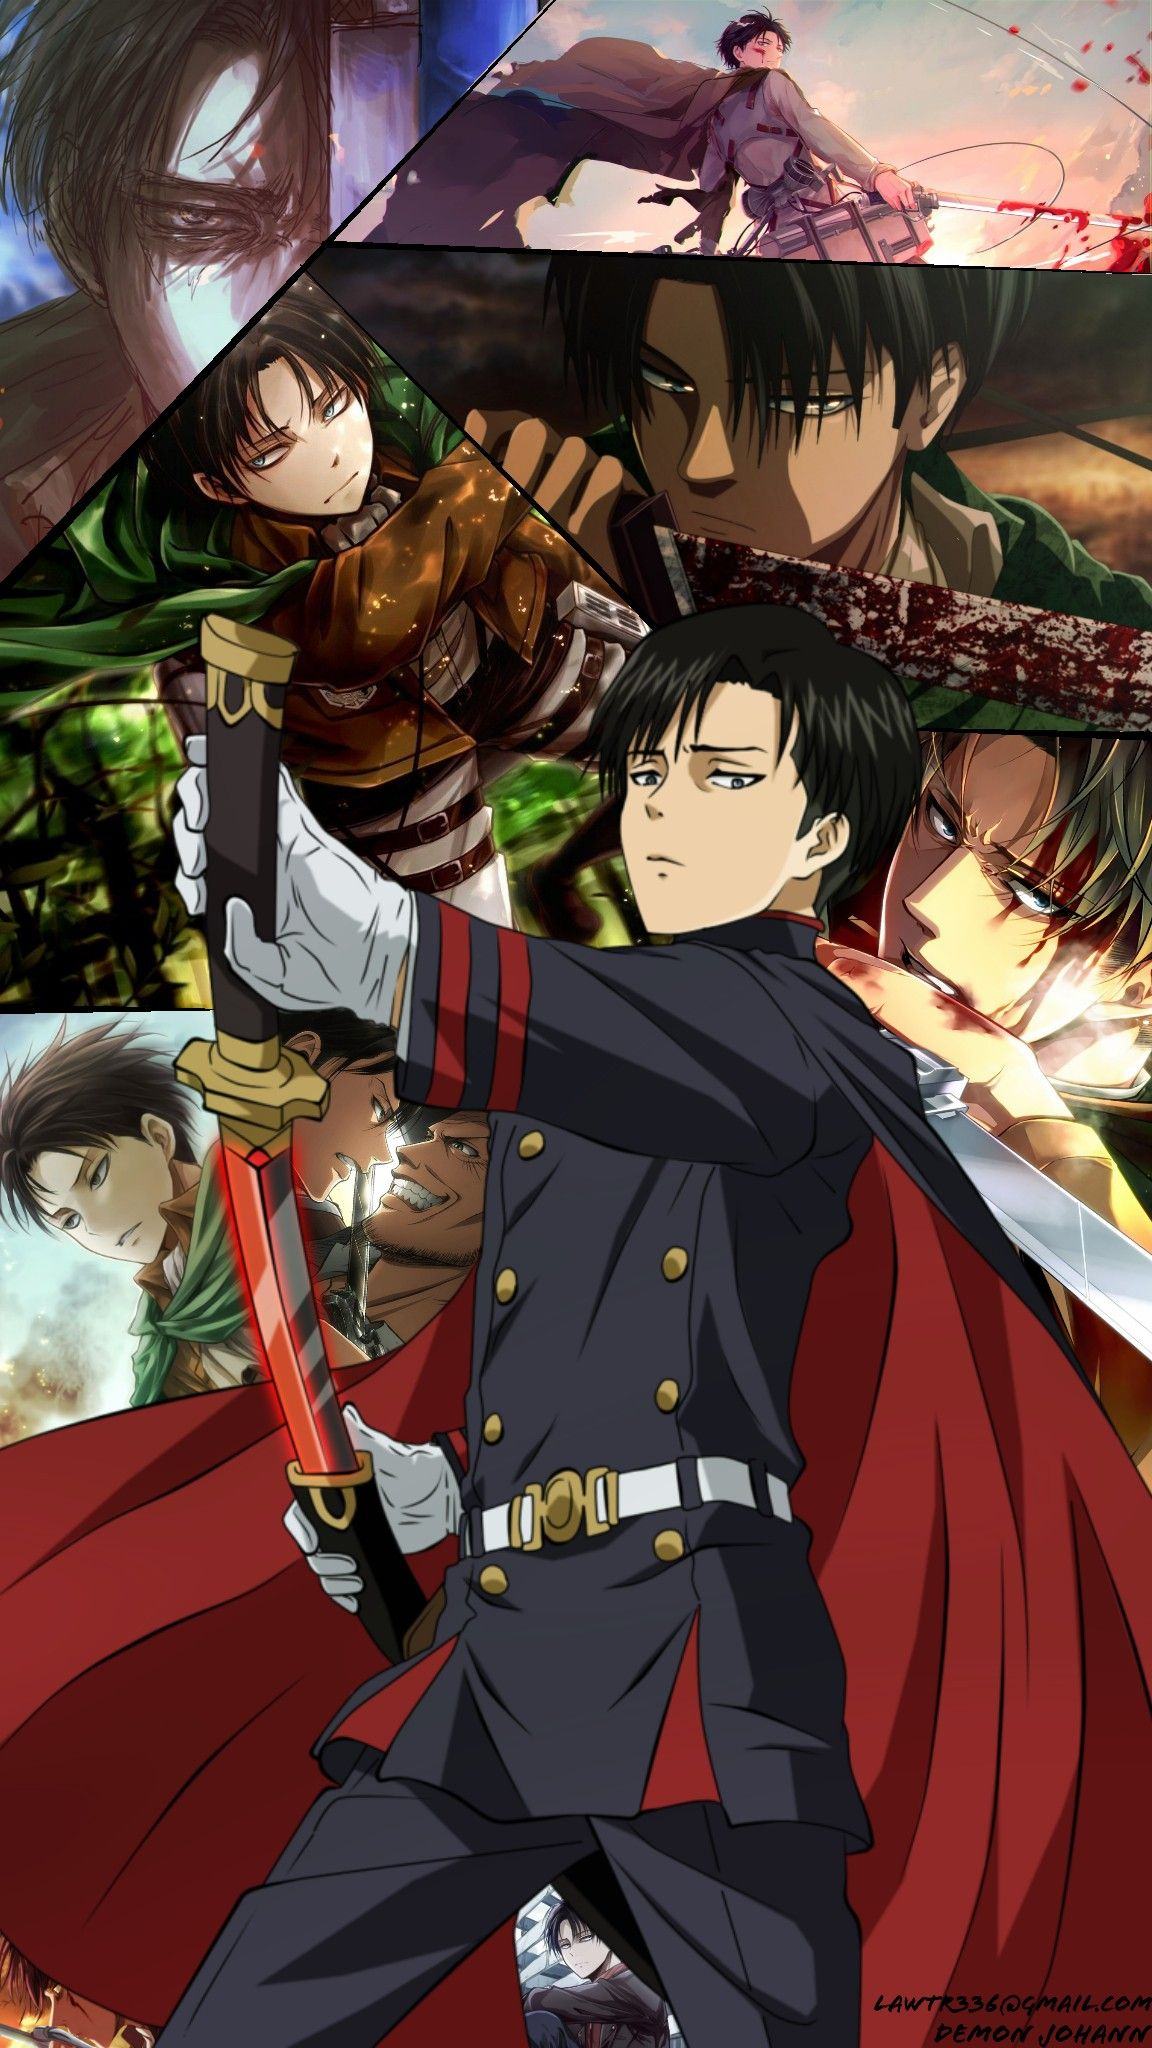 Levi Ackerman shingeki no kyojin attack on titan